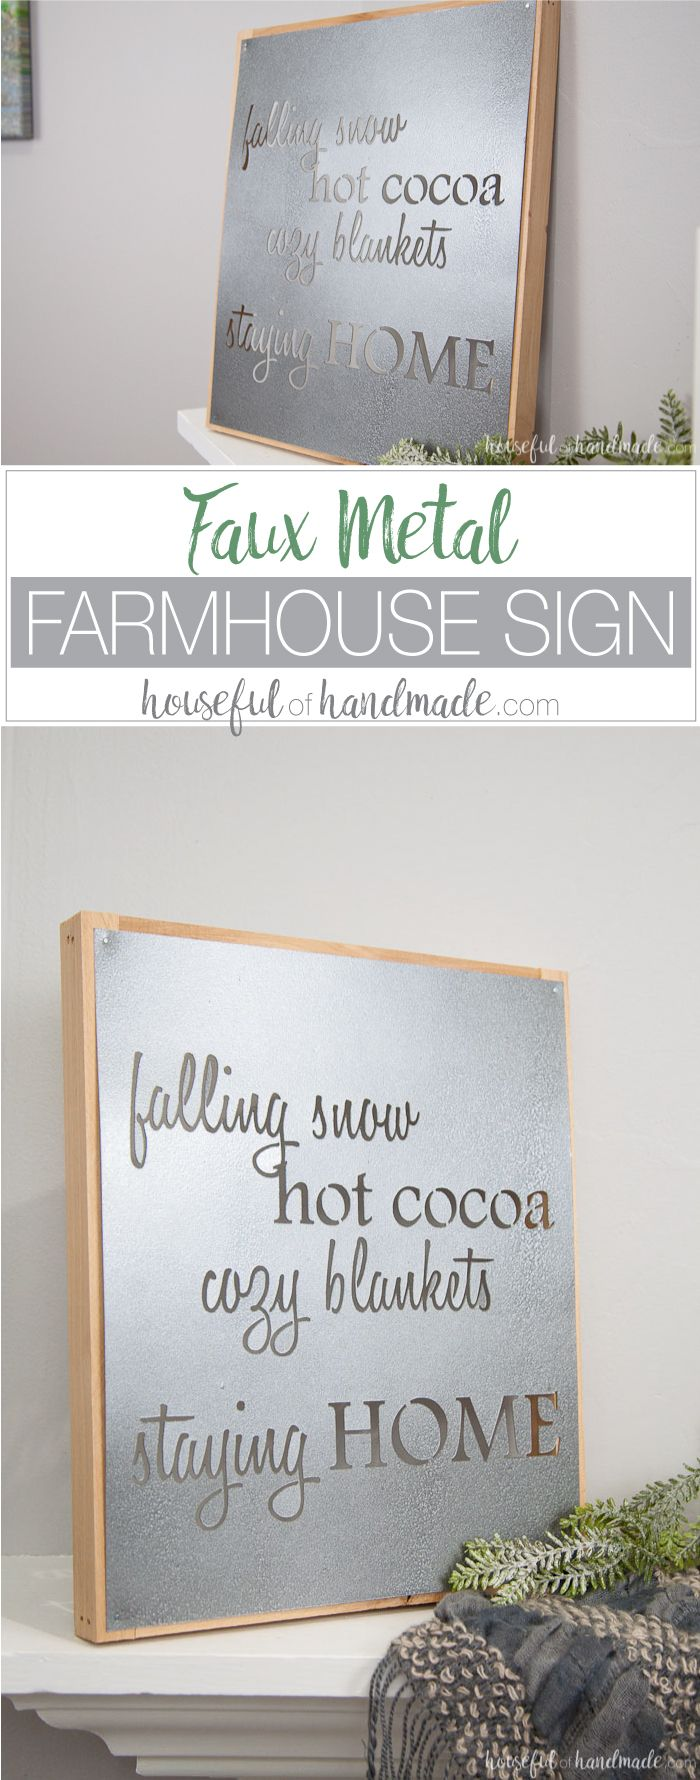 Shabby chic crafts to make - Faux Metal Farmhouse Sign